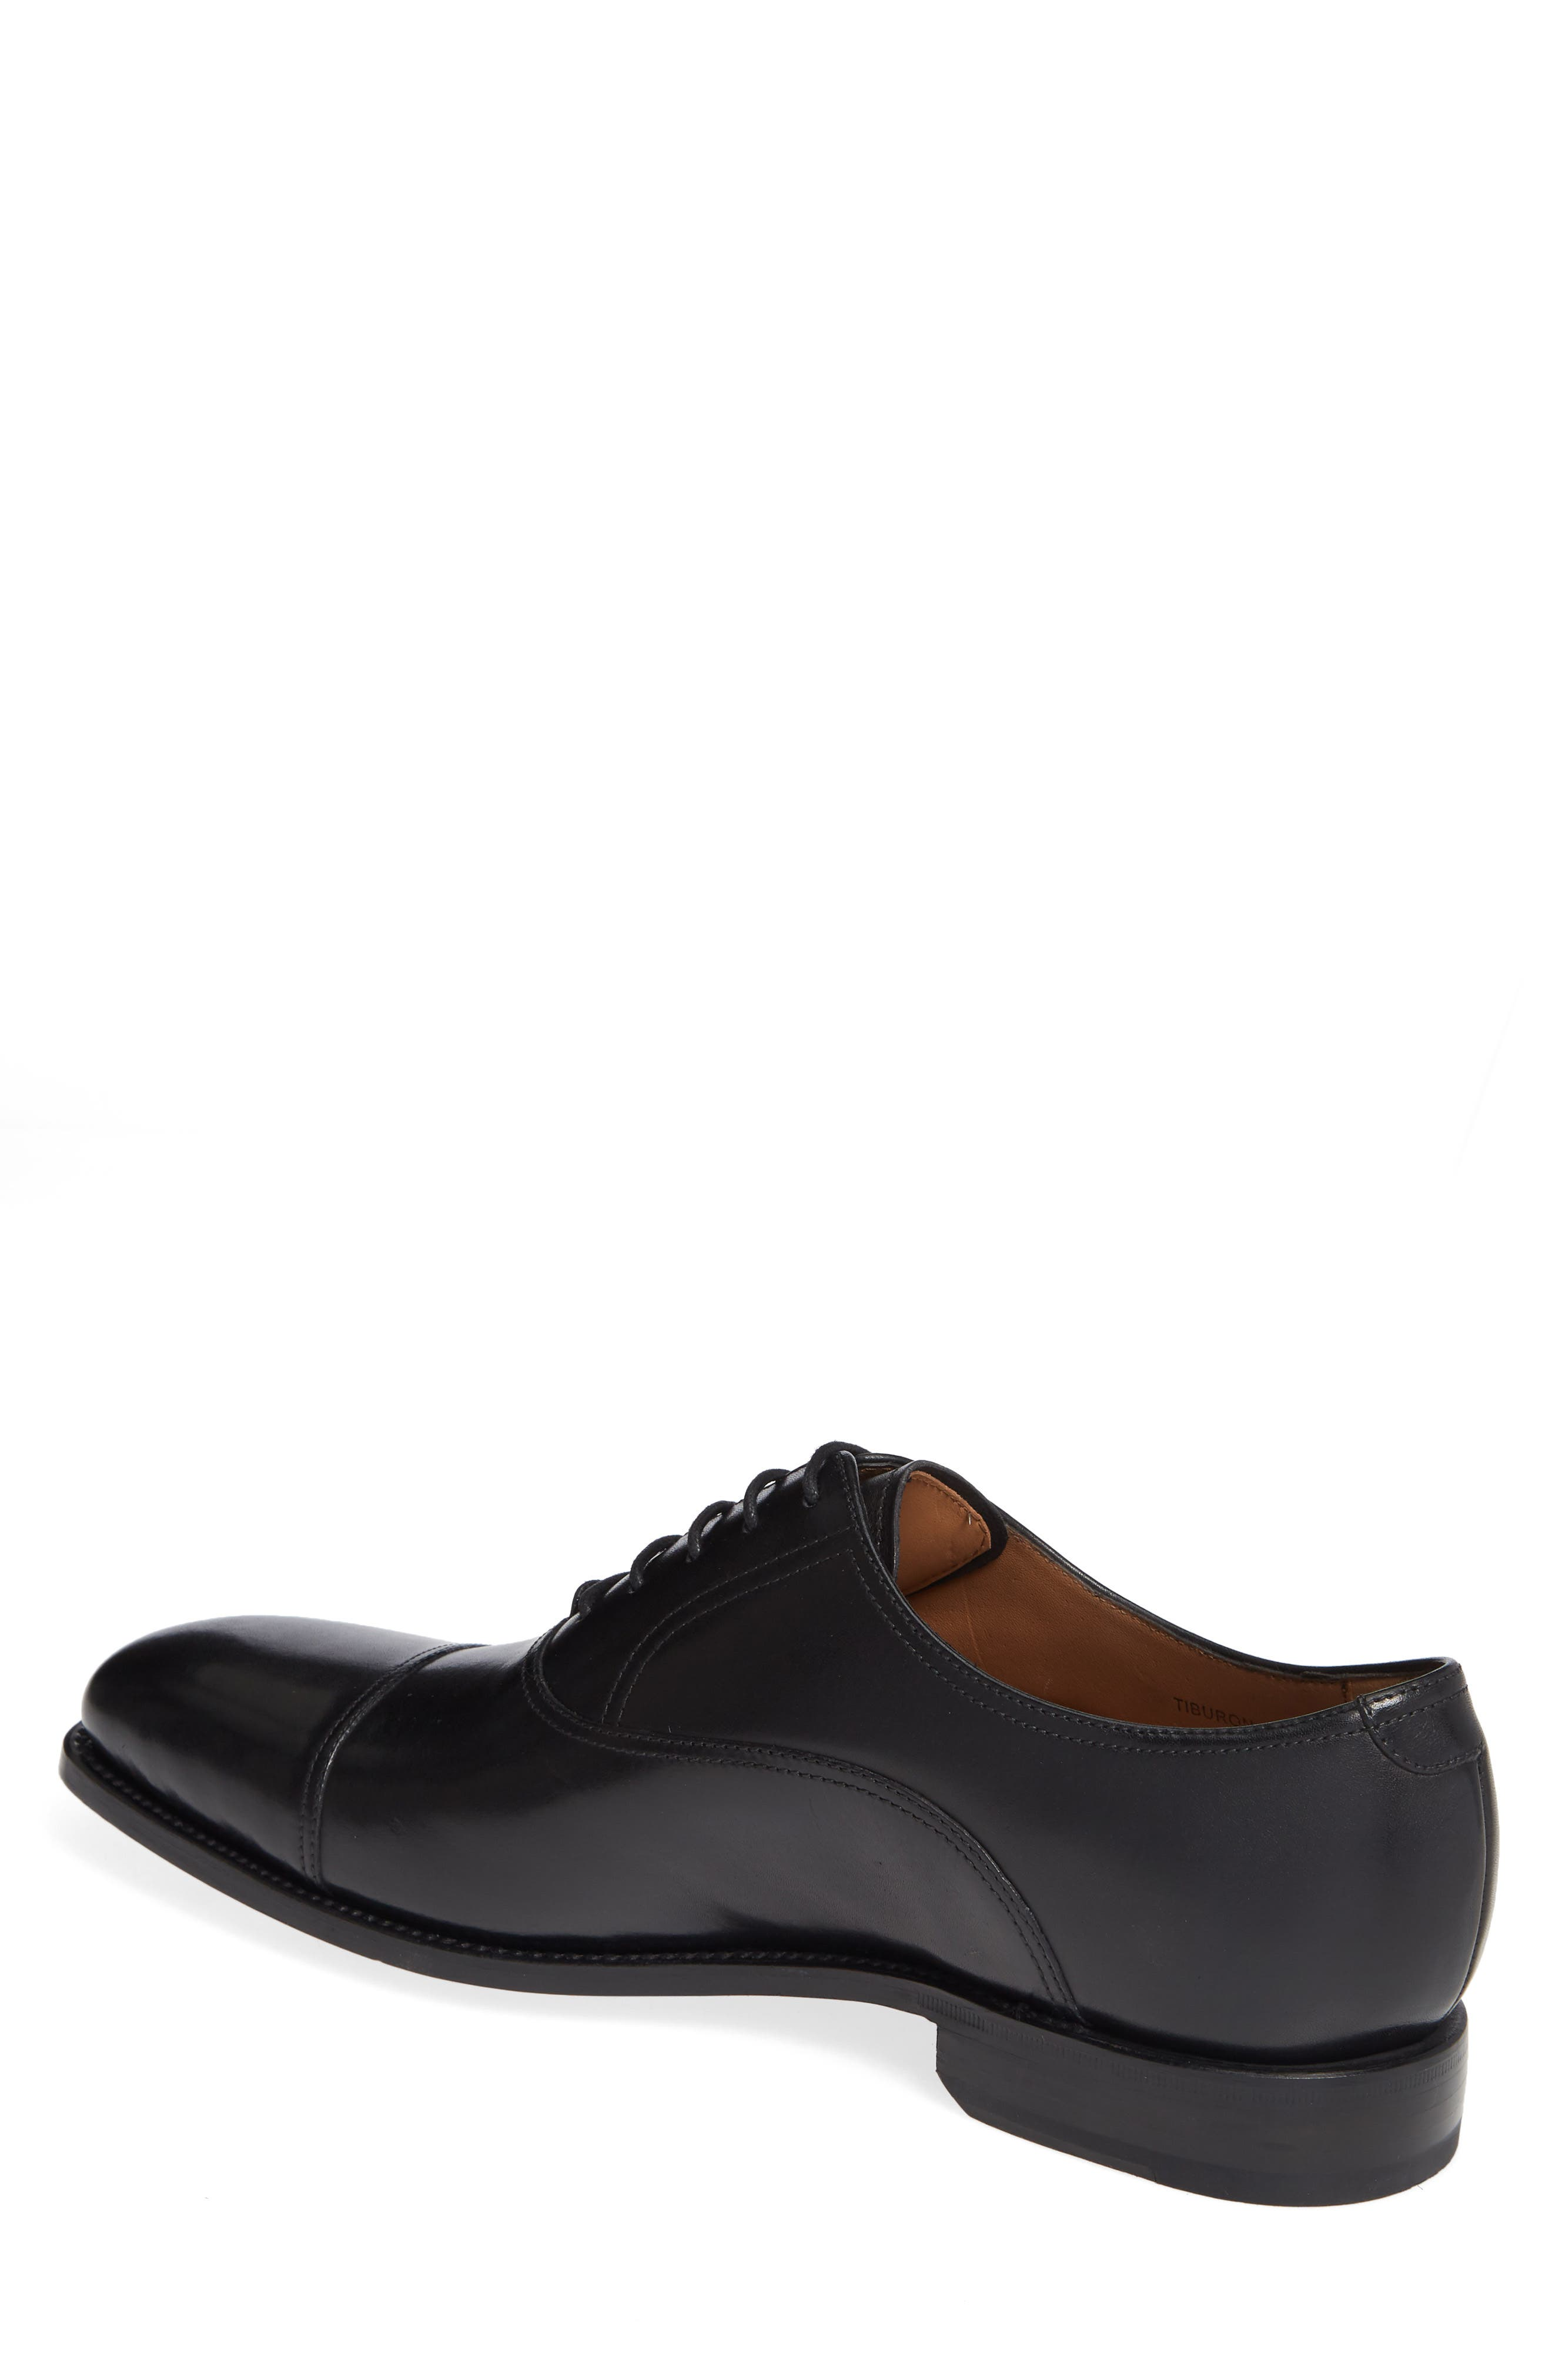 Tiburon Cap Toe Oxford,                             Alternate thumbnail 2, color,                             BLACK LEATHER